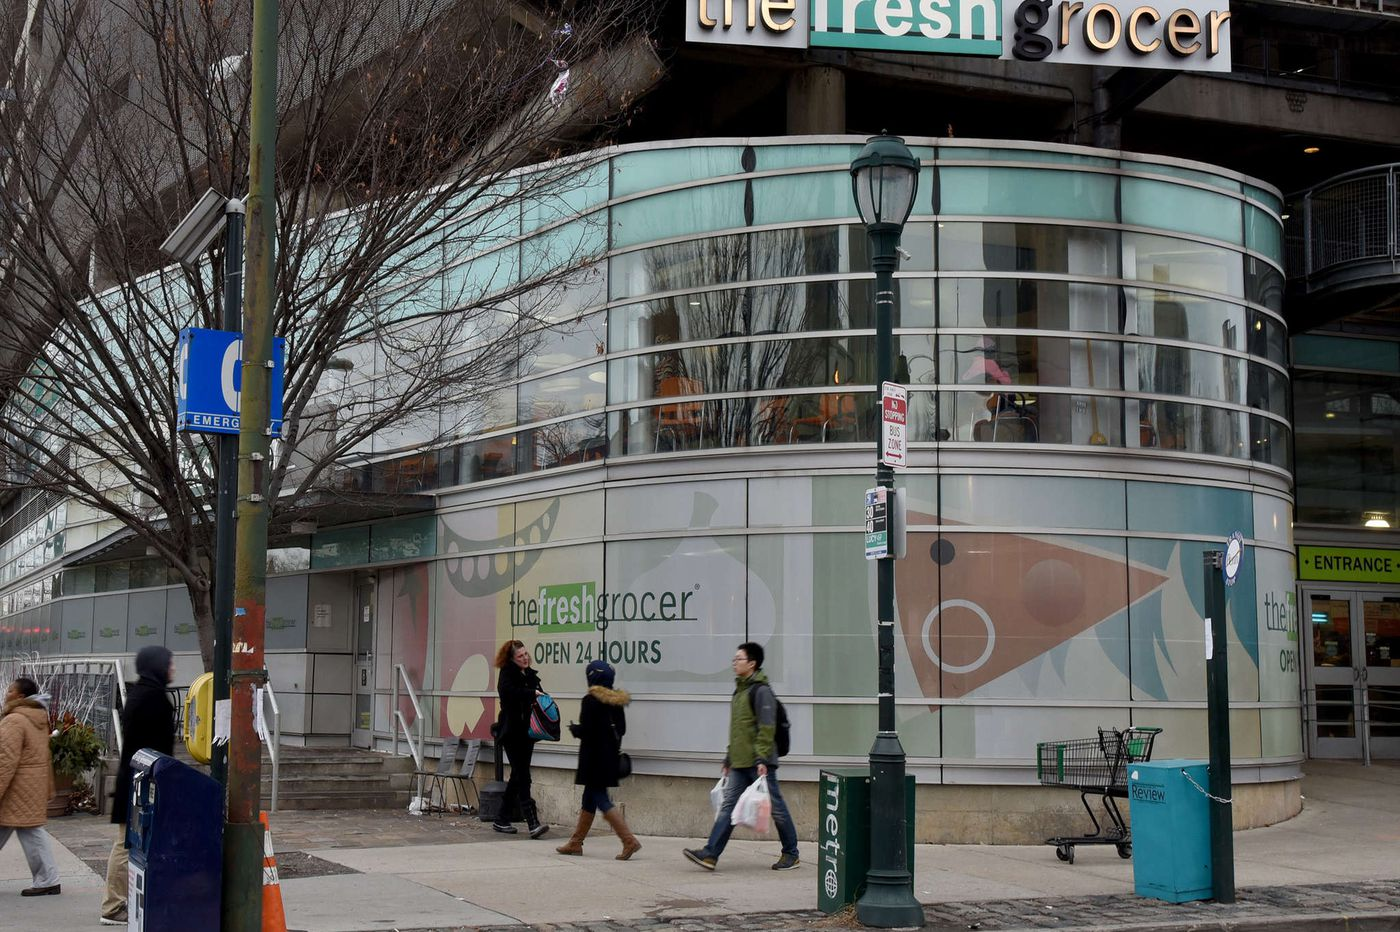 Fresh Grocer on Penn campus fights closure, possible change to Acme